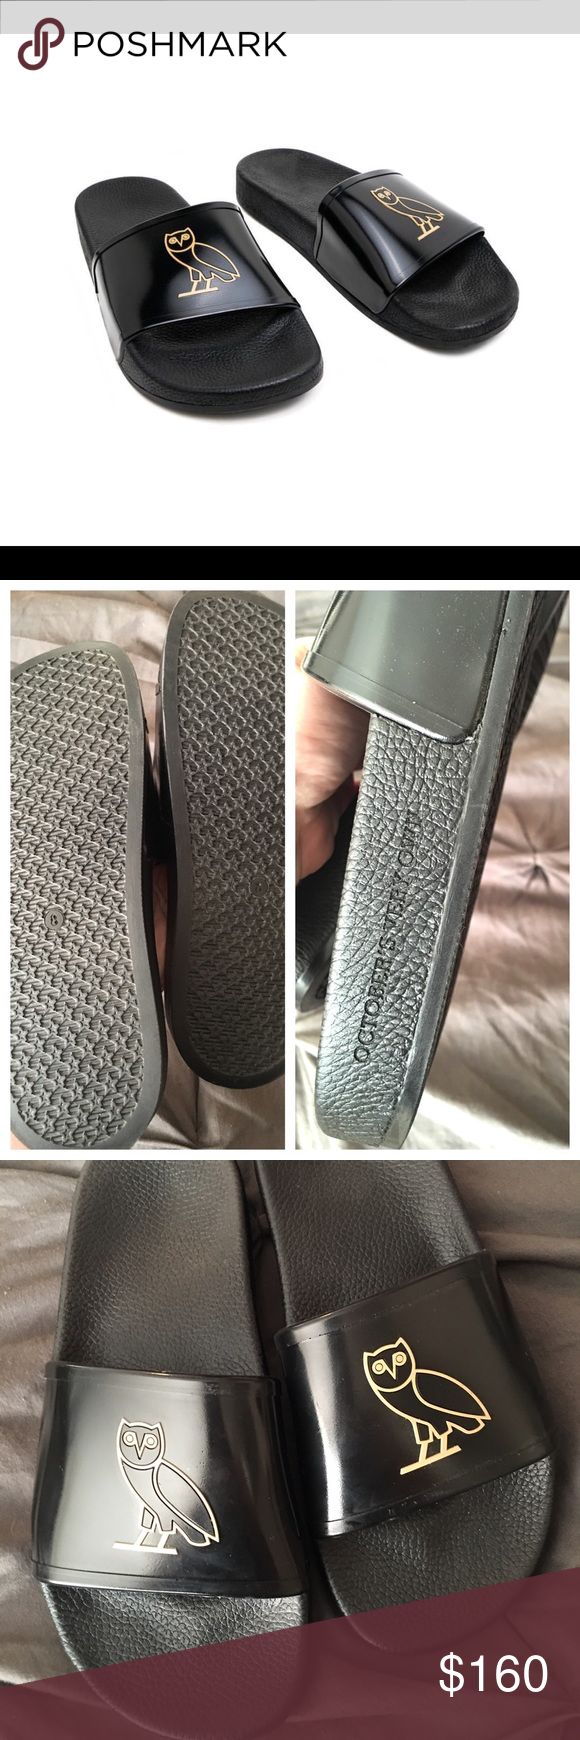 d303c2196a3b NWOT- OVO (Drake) Slides Slippers Flip Flops These are very rare OVO ...